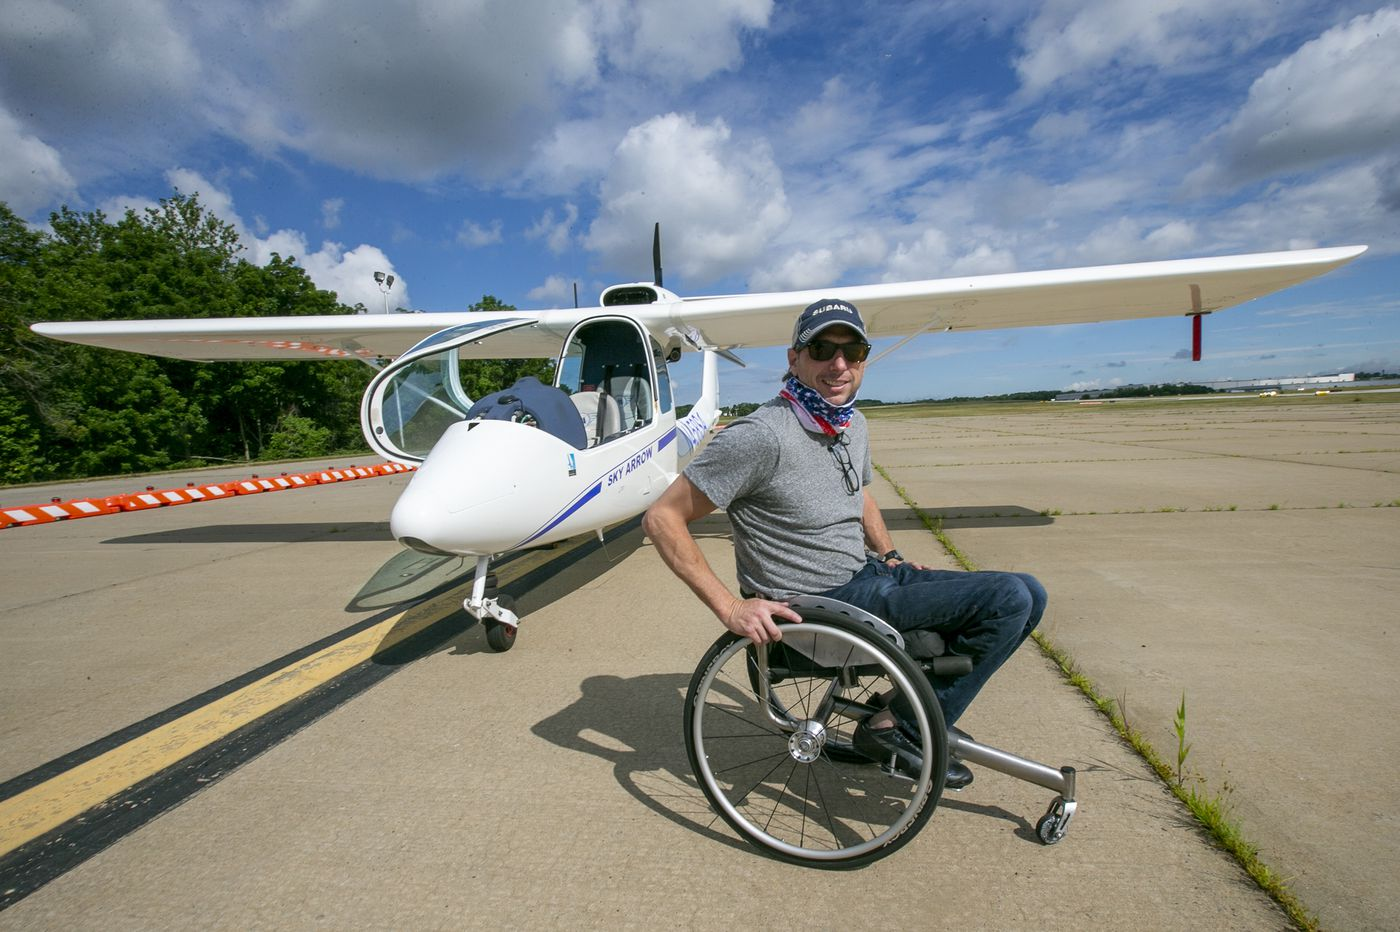 The Skies Beckoned for This Local Pilot, and a Disability Wasn't Going to Stop Him